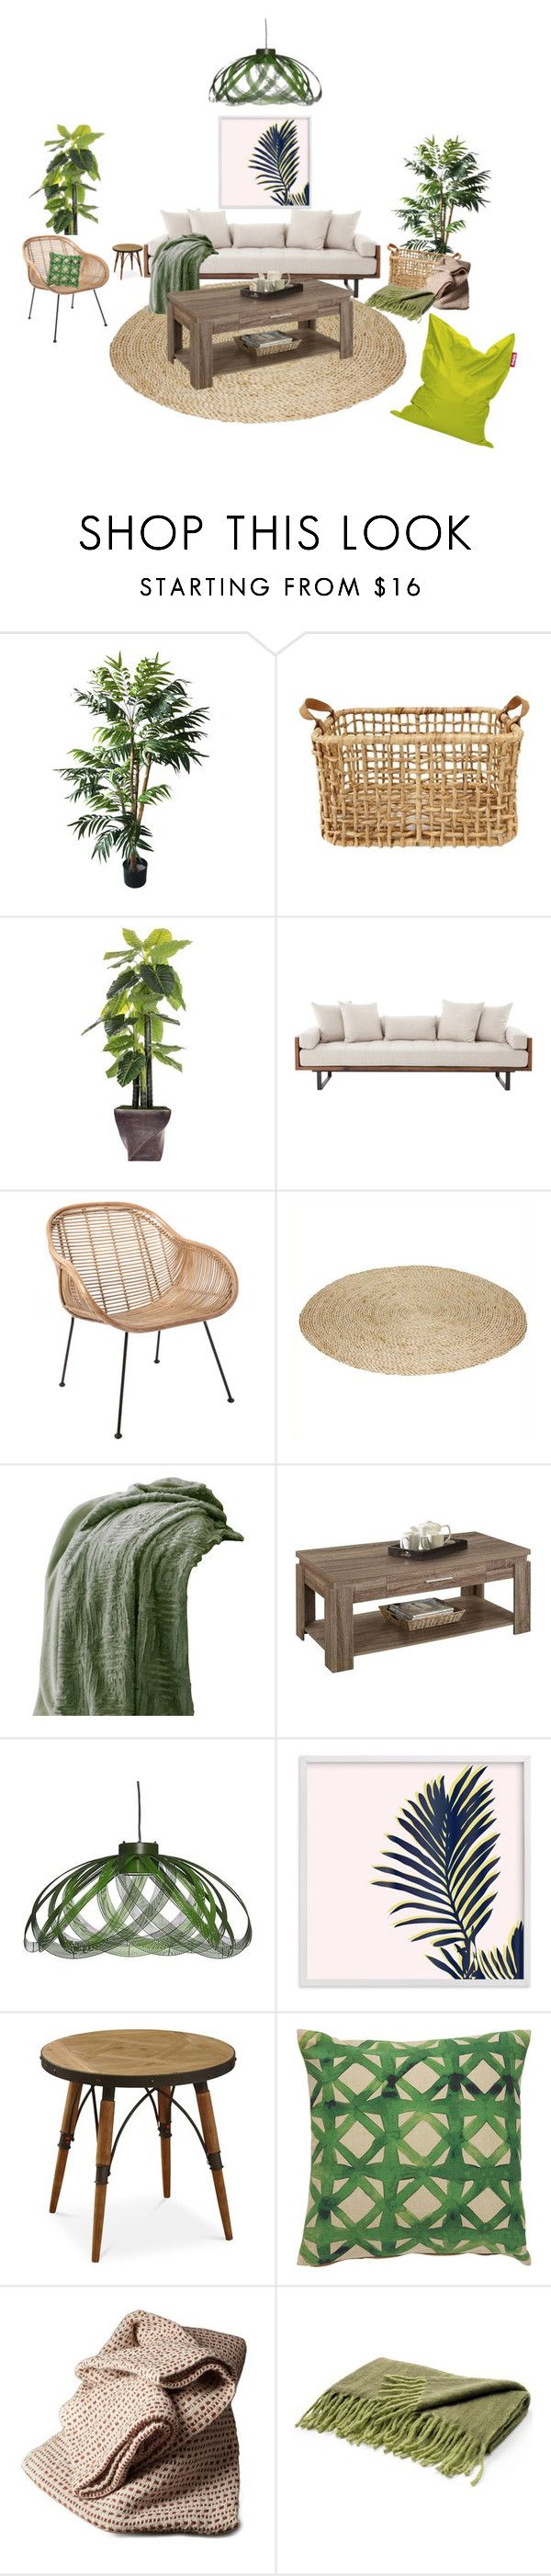 """""""simple tropical"""" by spot-light ❤ liked on Polyvore featuring interior, interiors, interior design, home, home decor, interior decorating, TradeMark, Laura Ashley, ACME and Jaipur"""